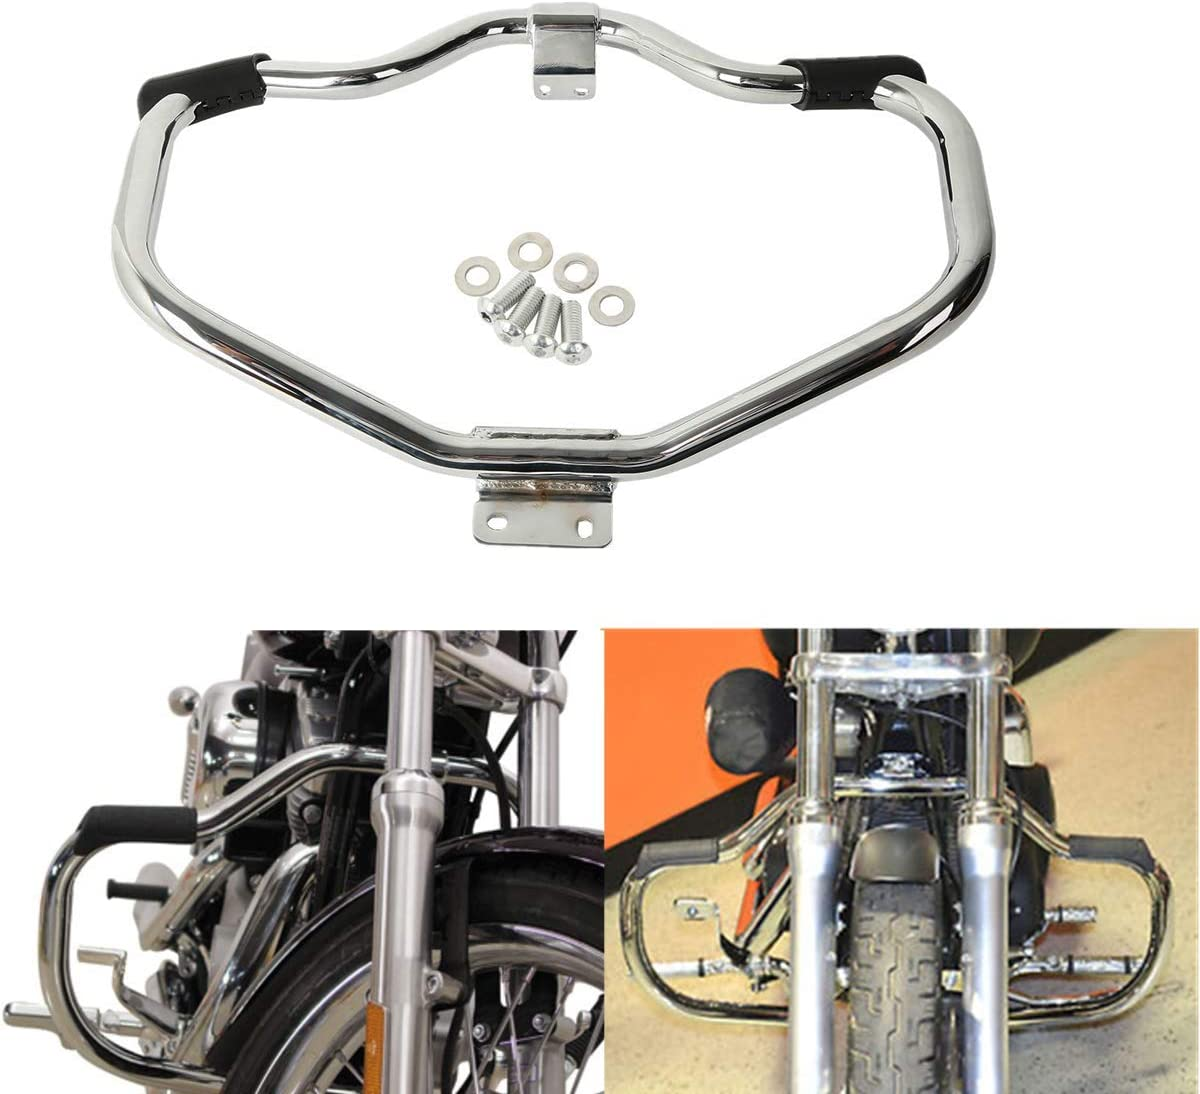 Ambienceo Engine Guard Highway Crash Bar Fits For Harley Sportster 883 1200 XL XR 48 72 2004-2019 Silver